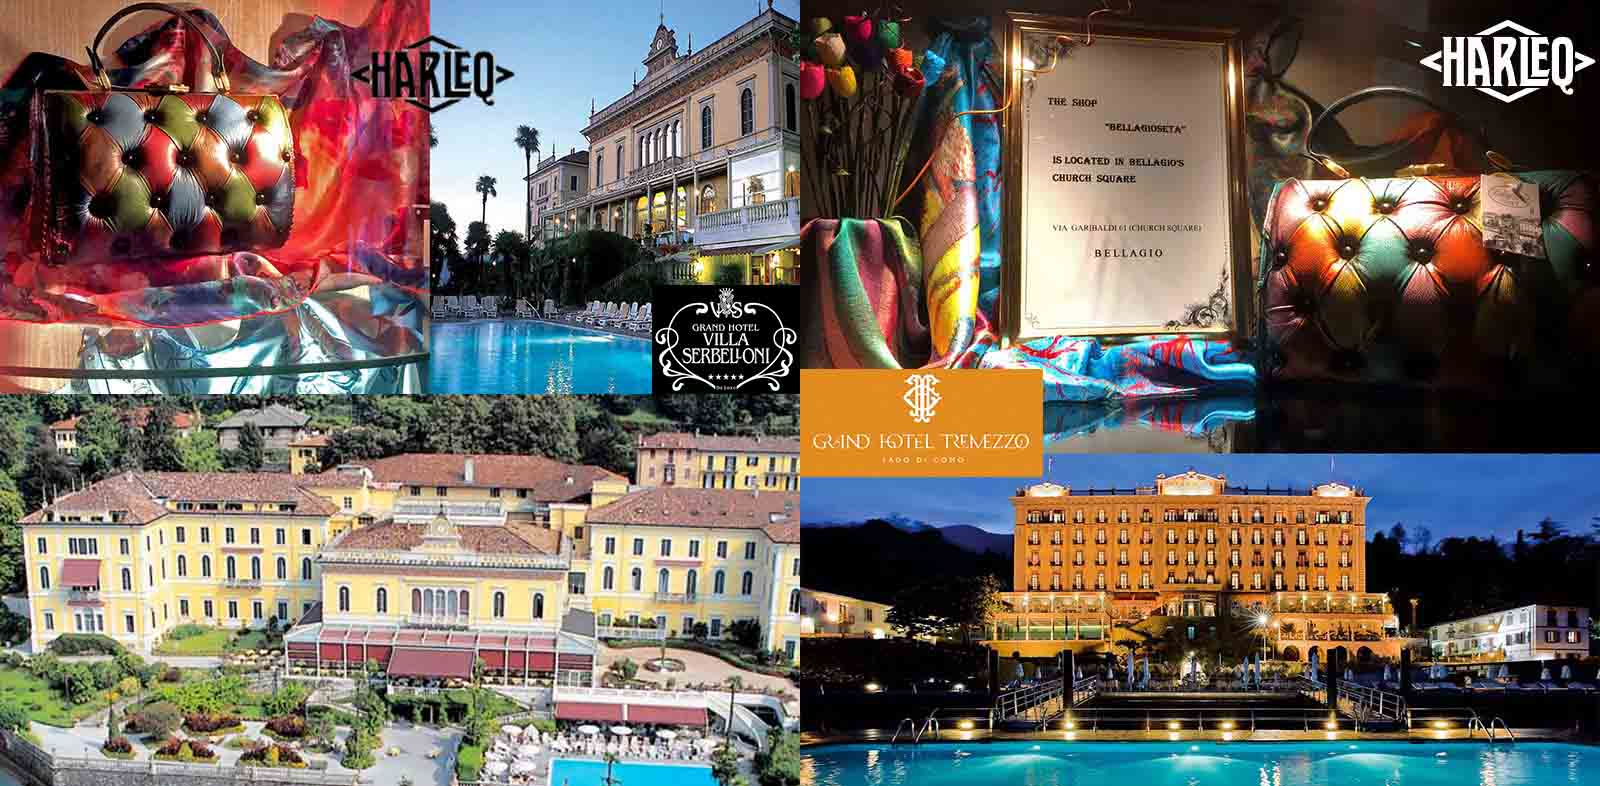 harleq-bags-luxury-hotels-como